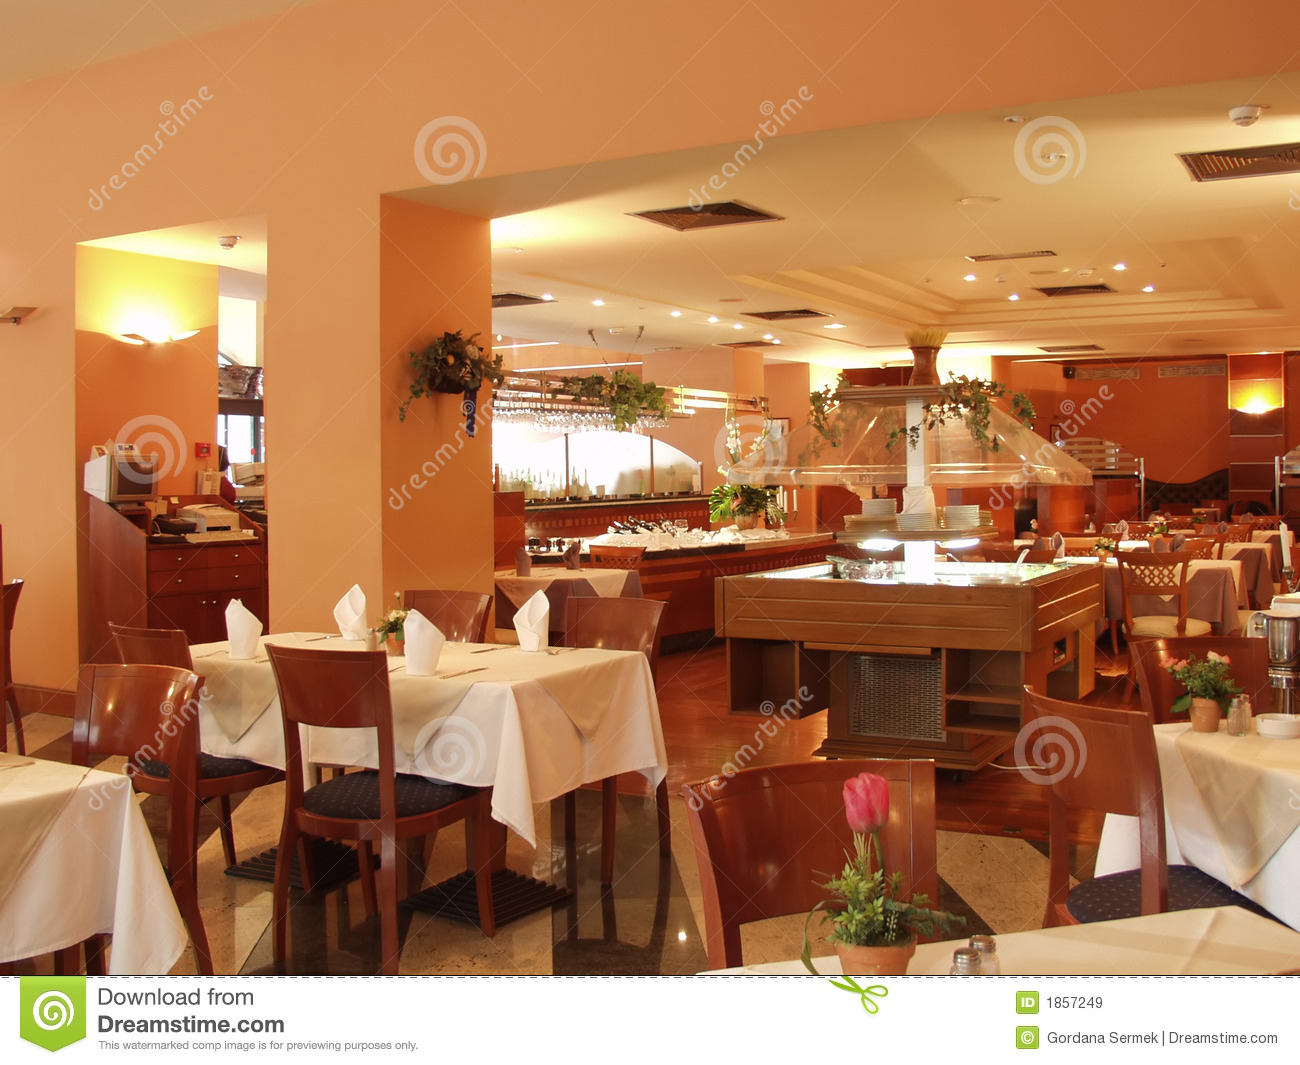 Restaurant interior royalty free stock images image